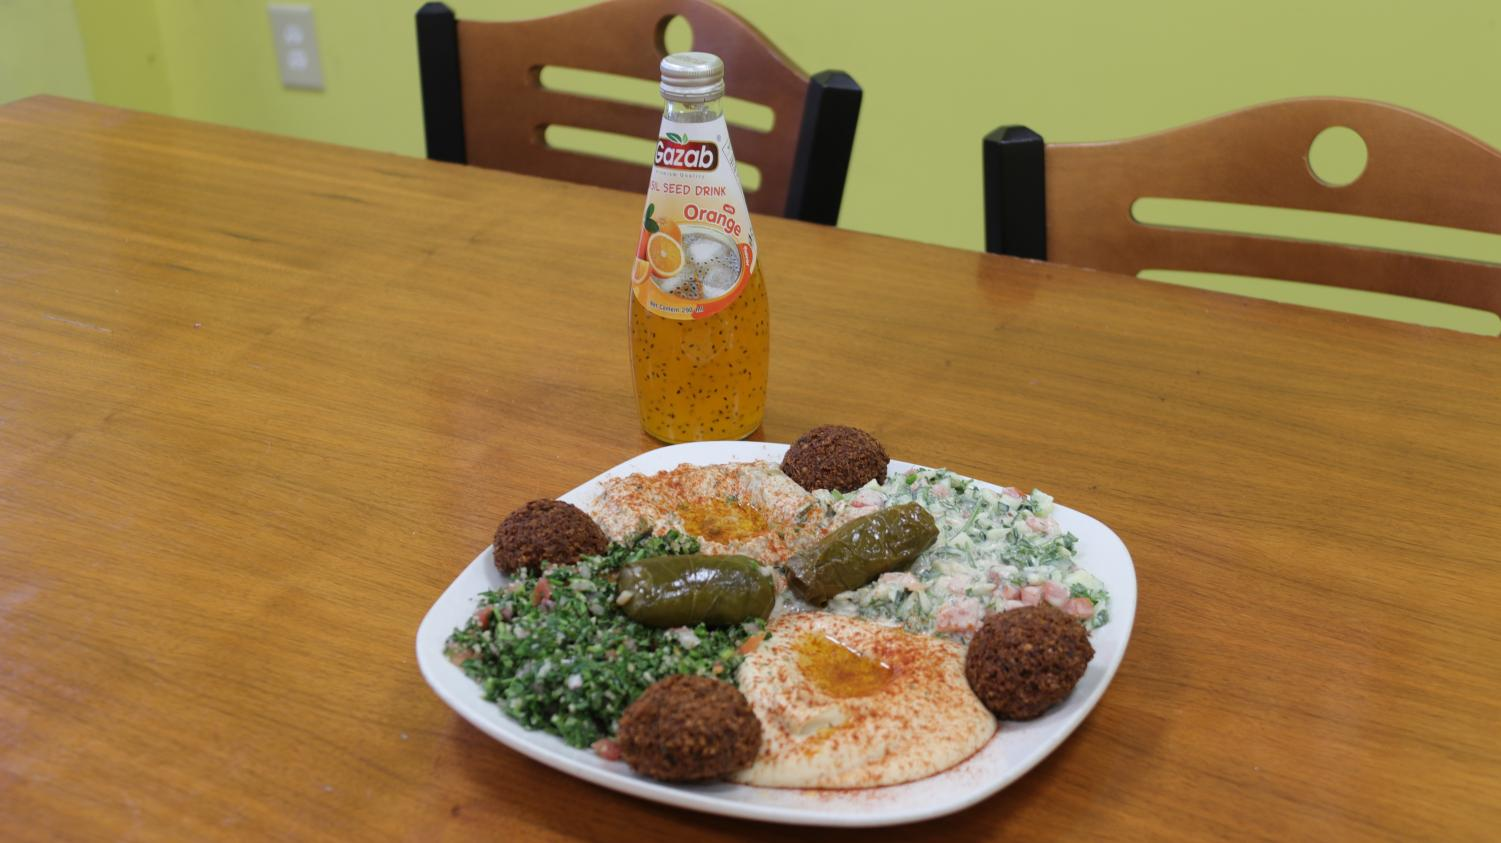 Tasty dishes await at the Pita Zone in Bolingbrook. The menu has meat and vegetarian options.